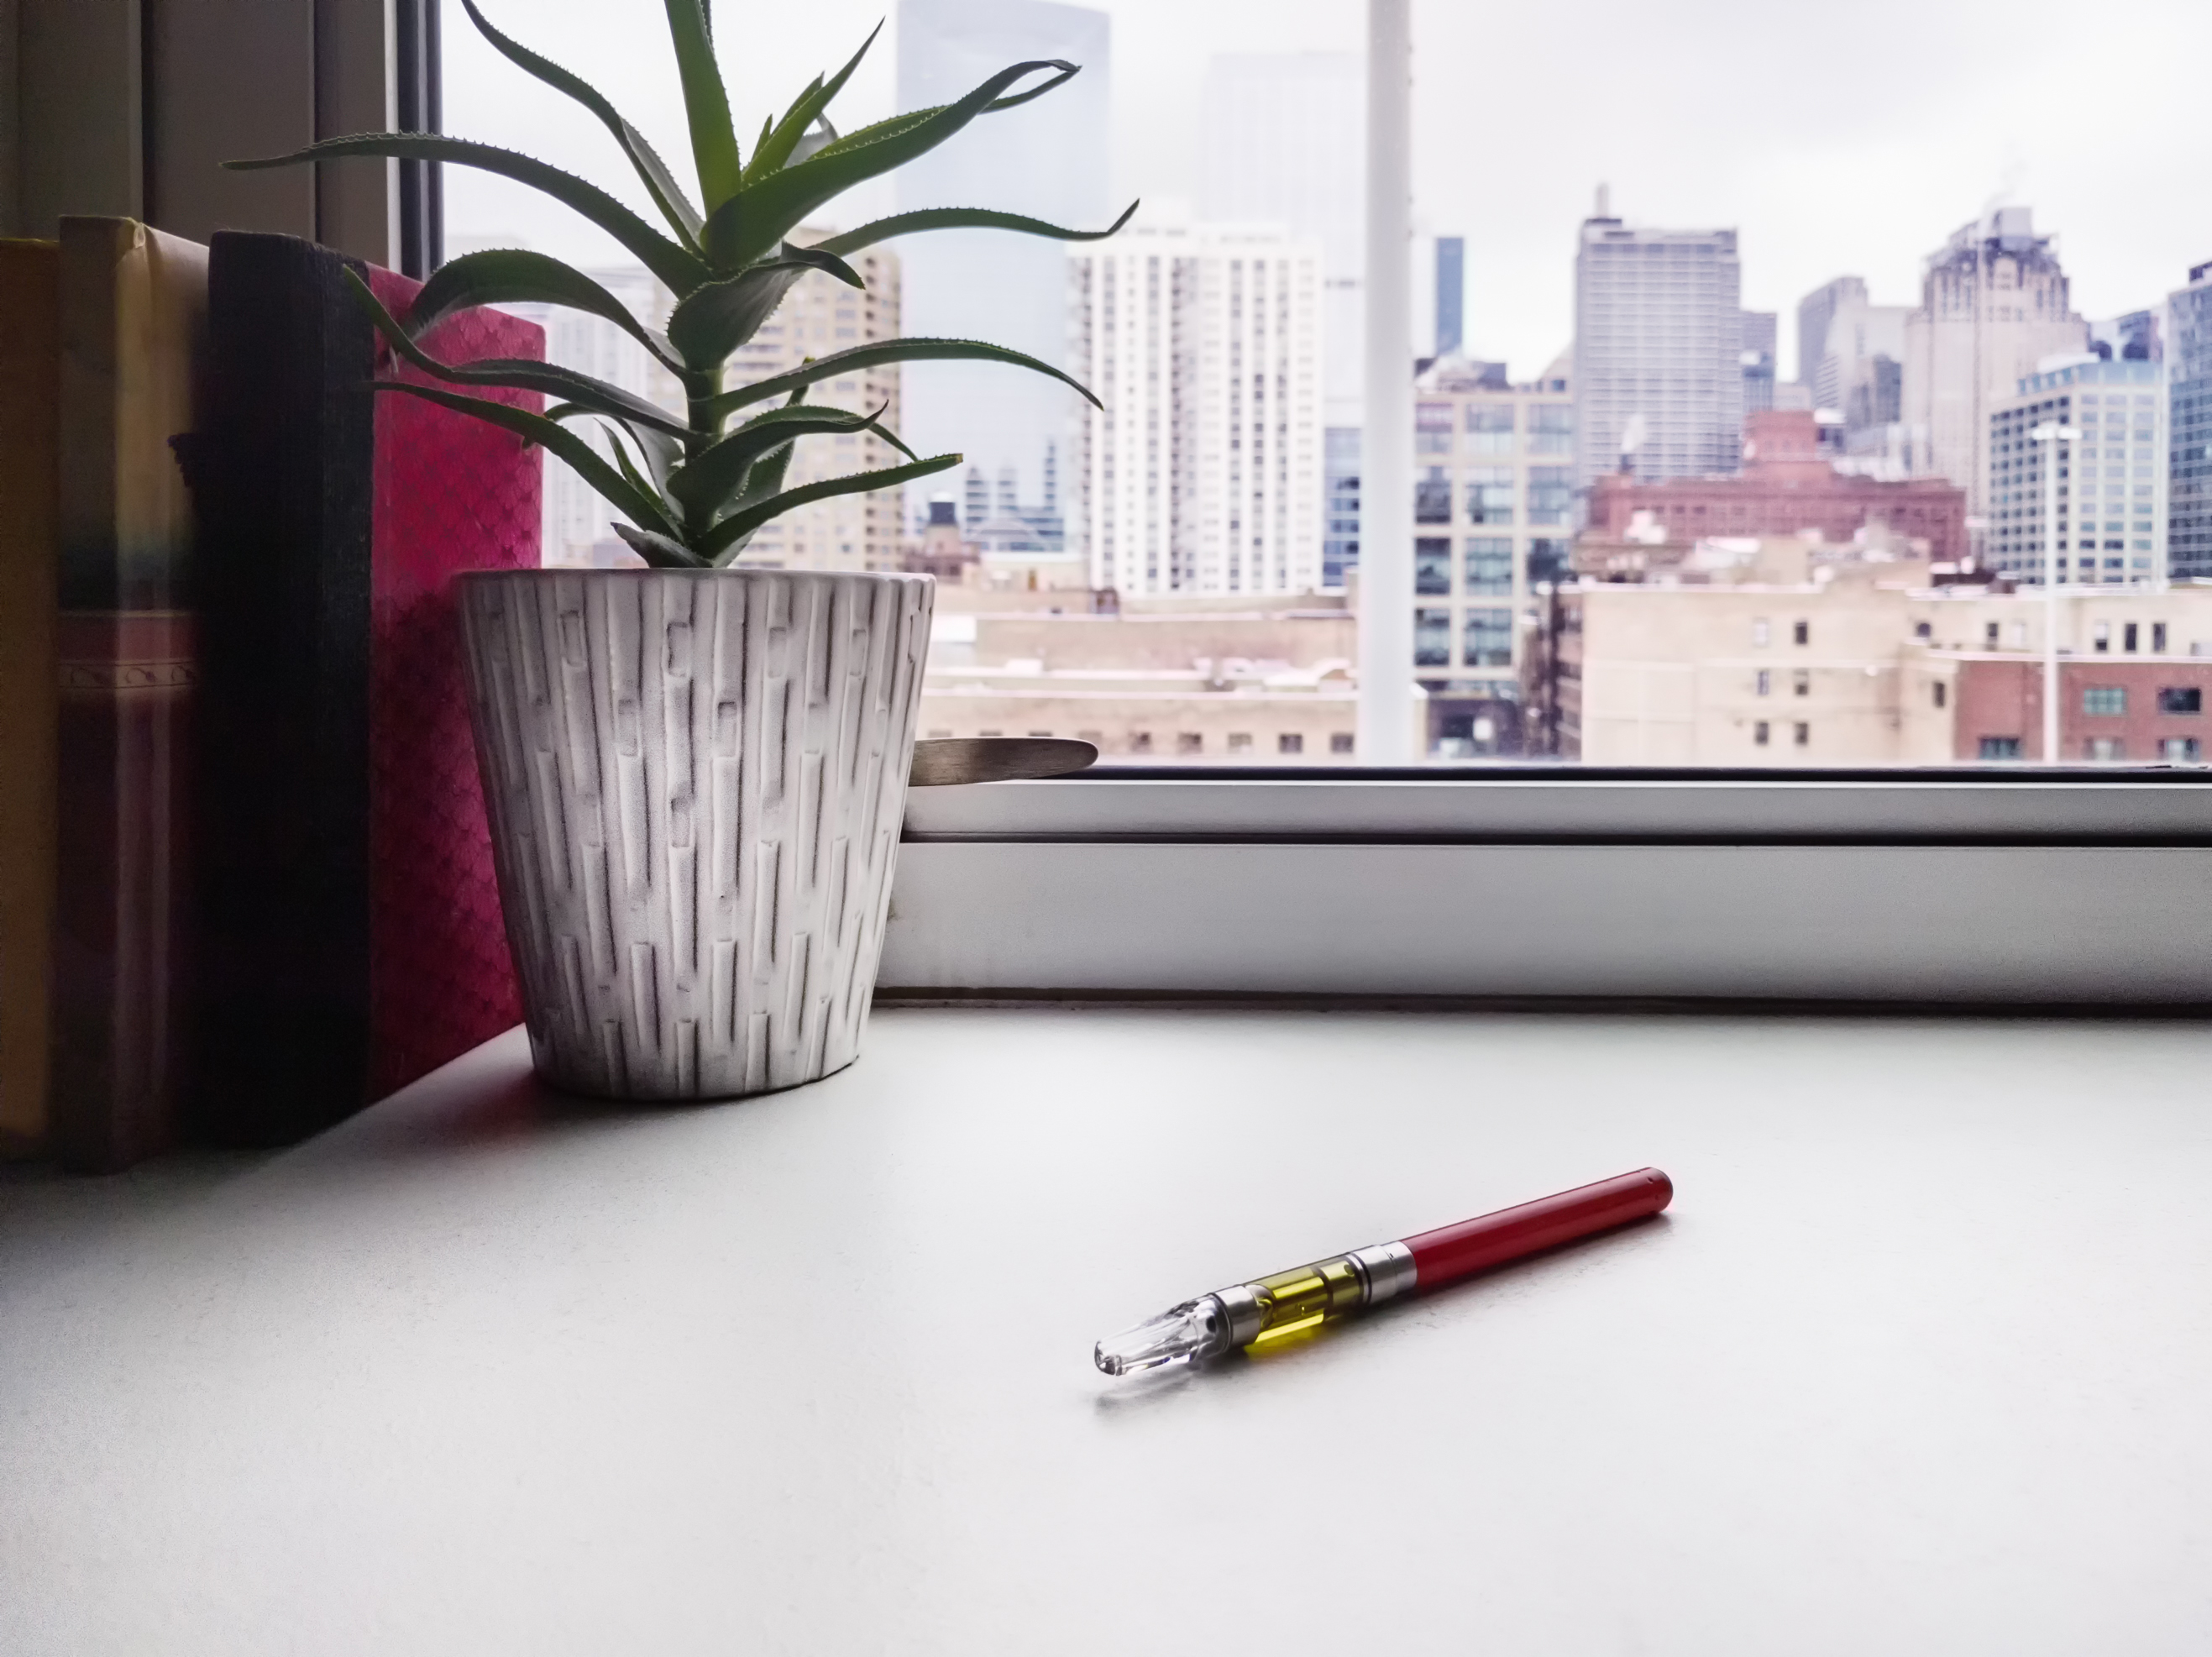 The Ultimate Guide to CBD Vape Pens (And Things to Watch Out For)